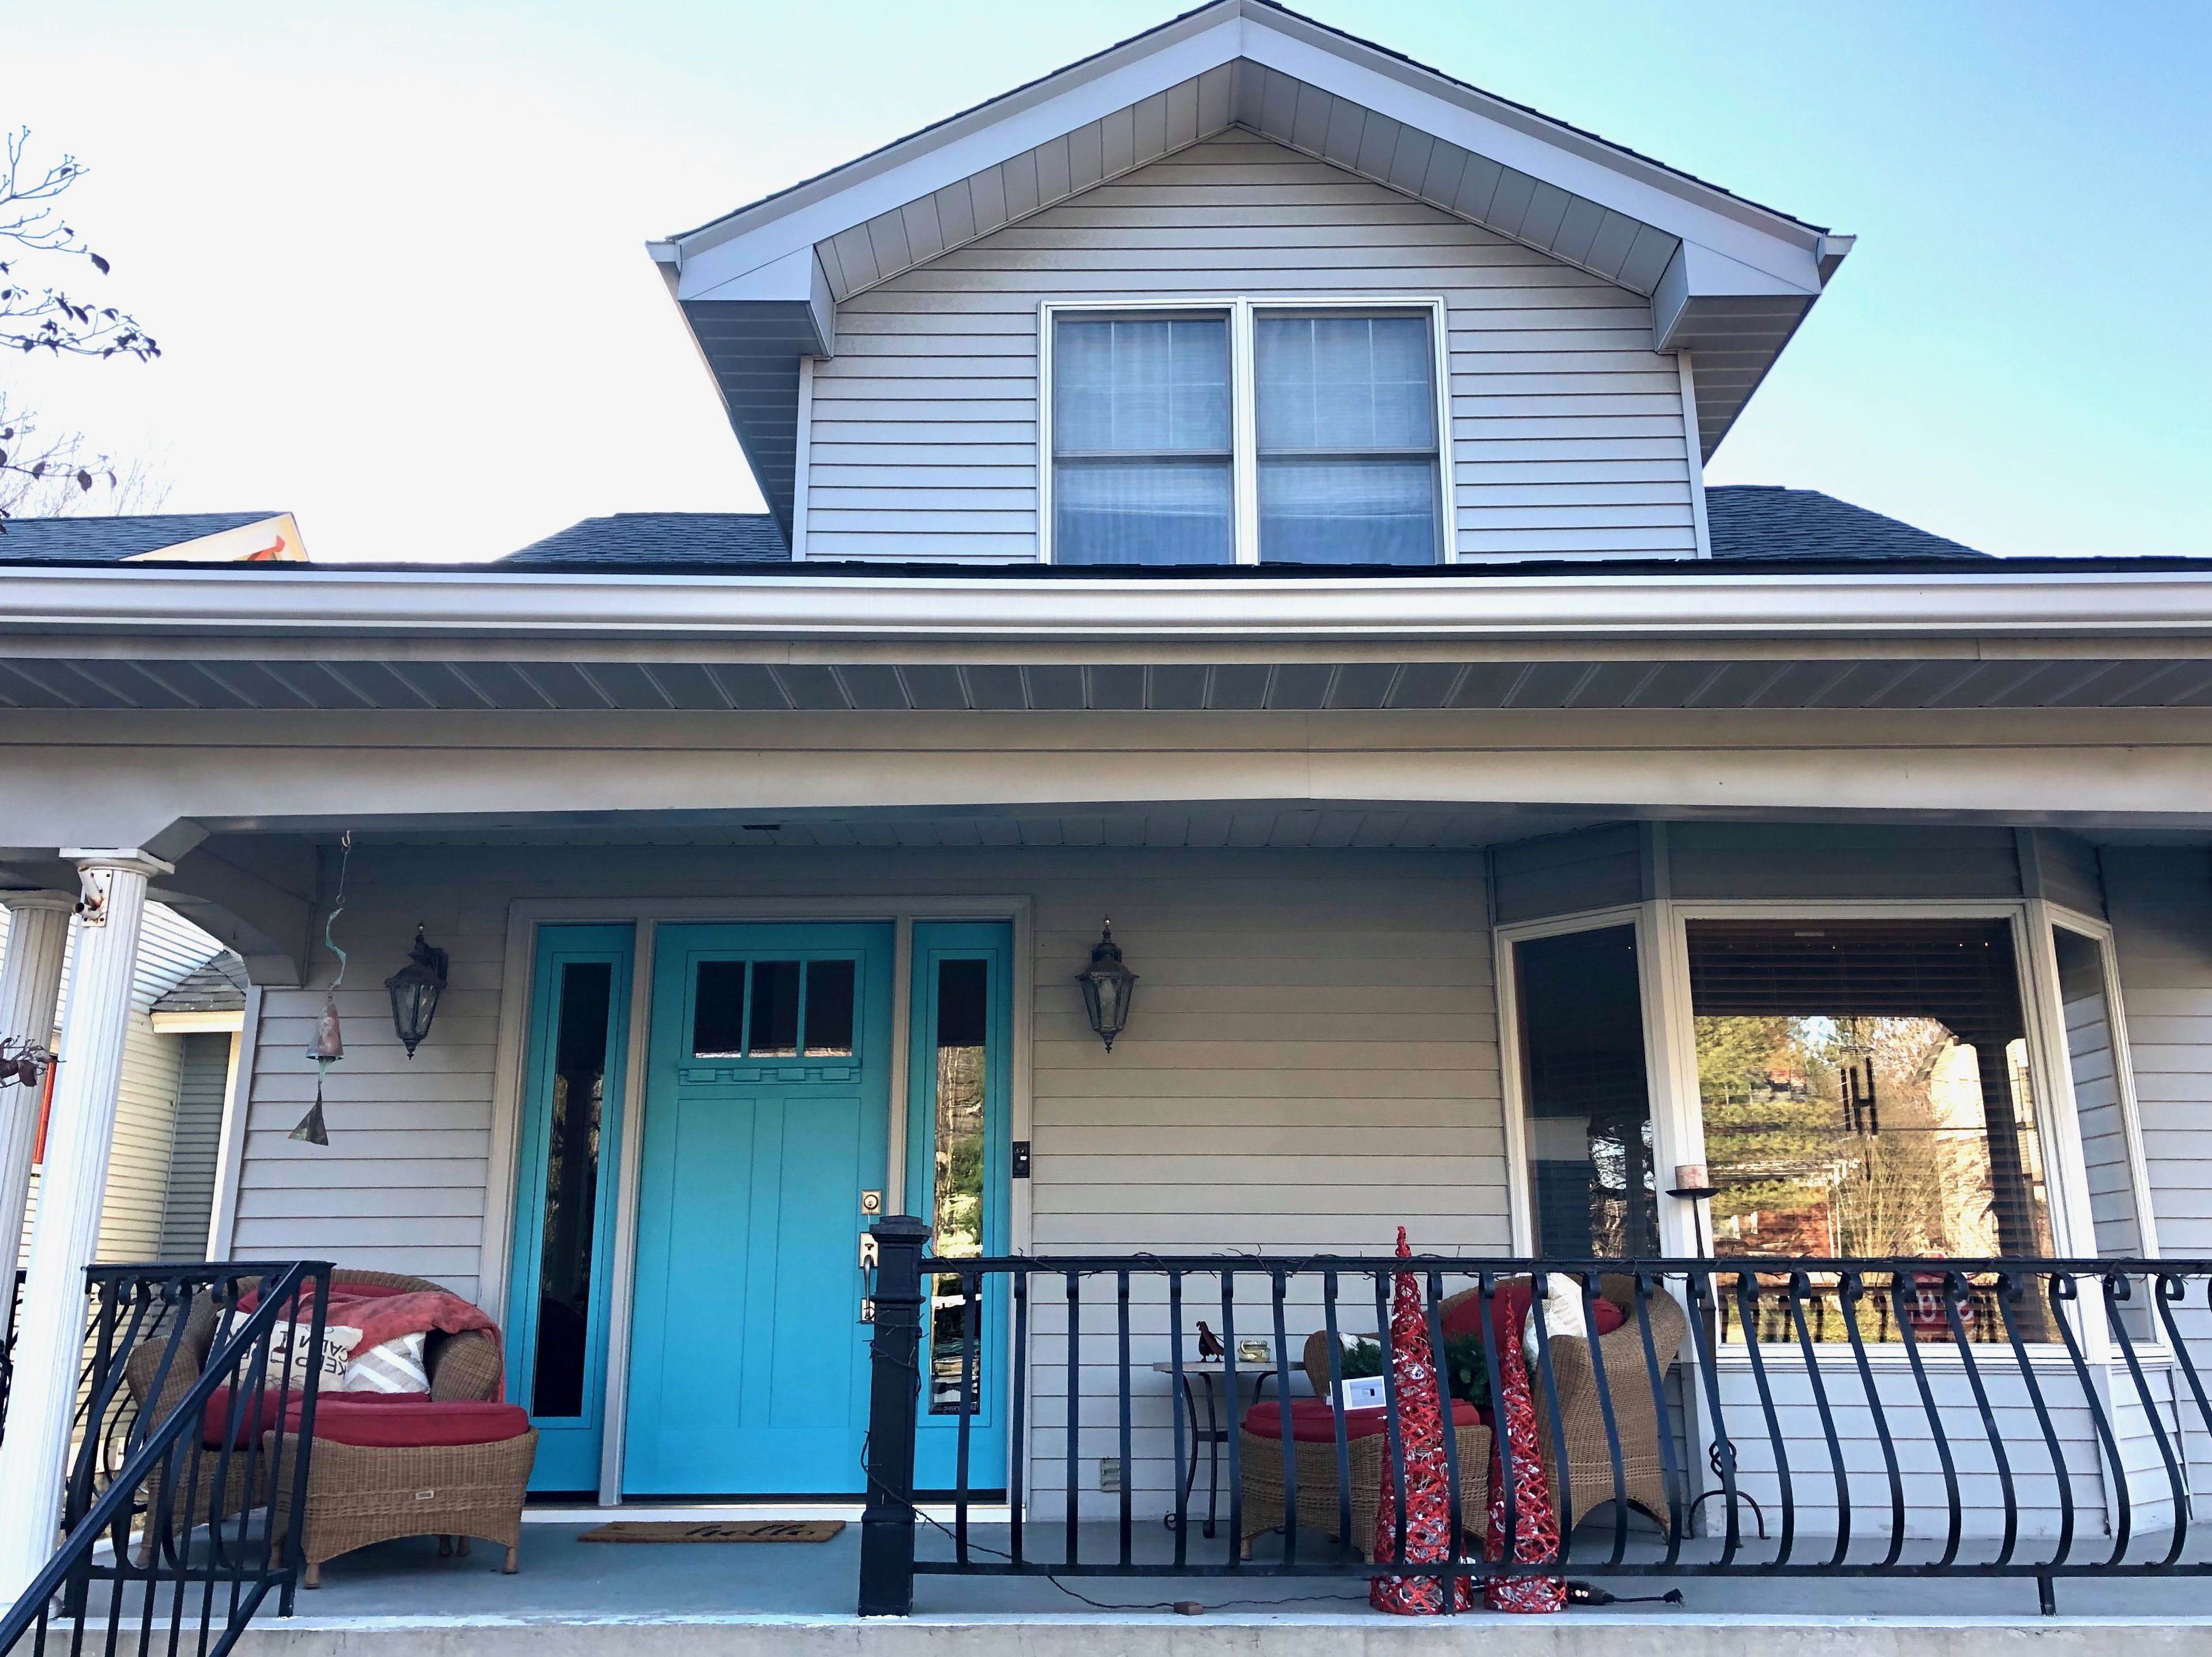 New turquoise door adds instant curb appeal to this